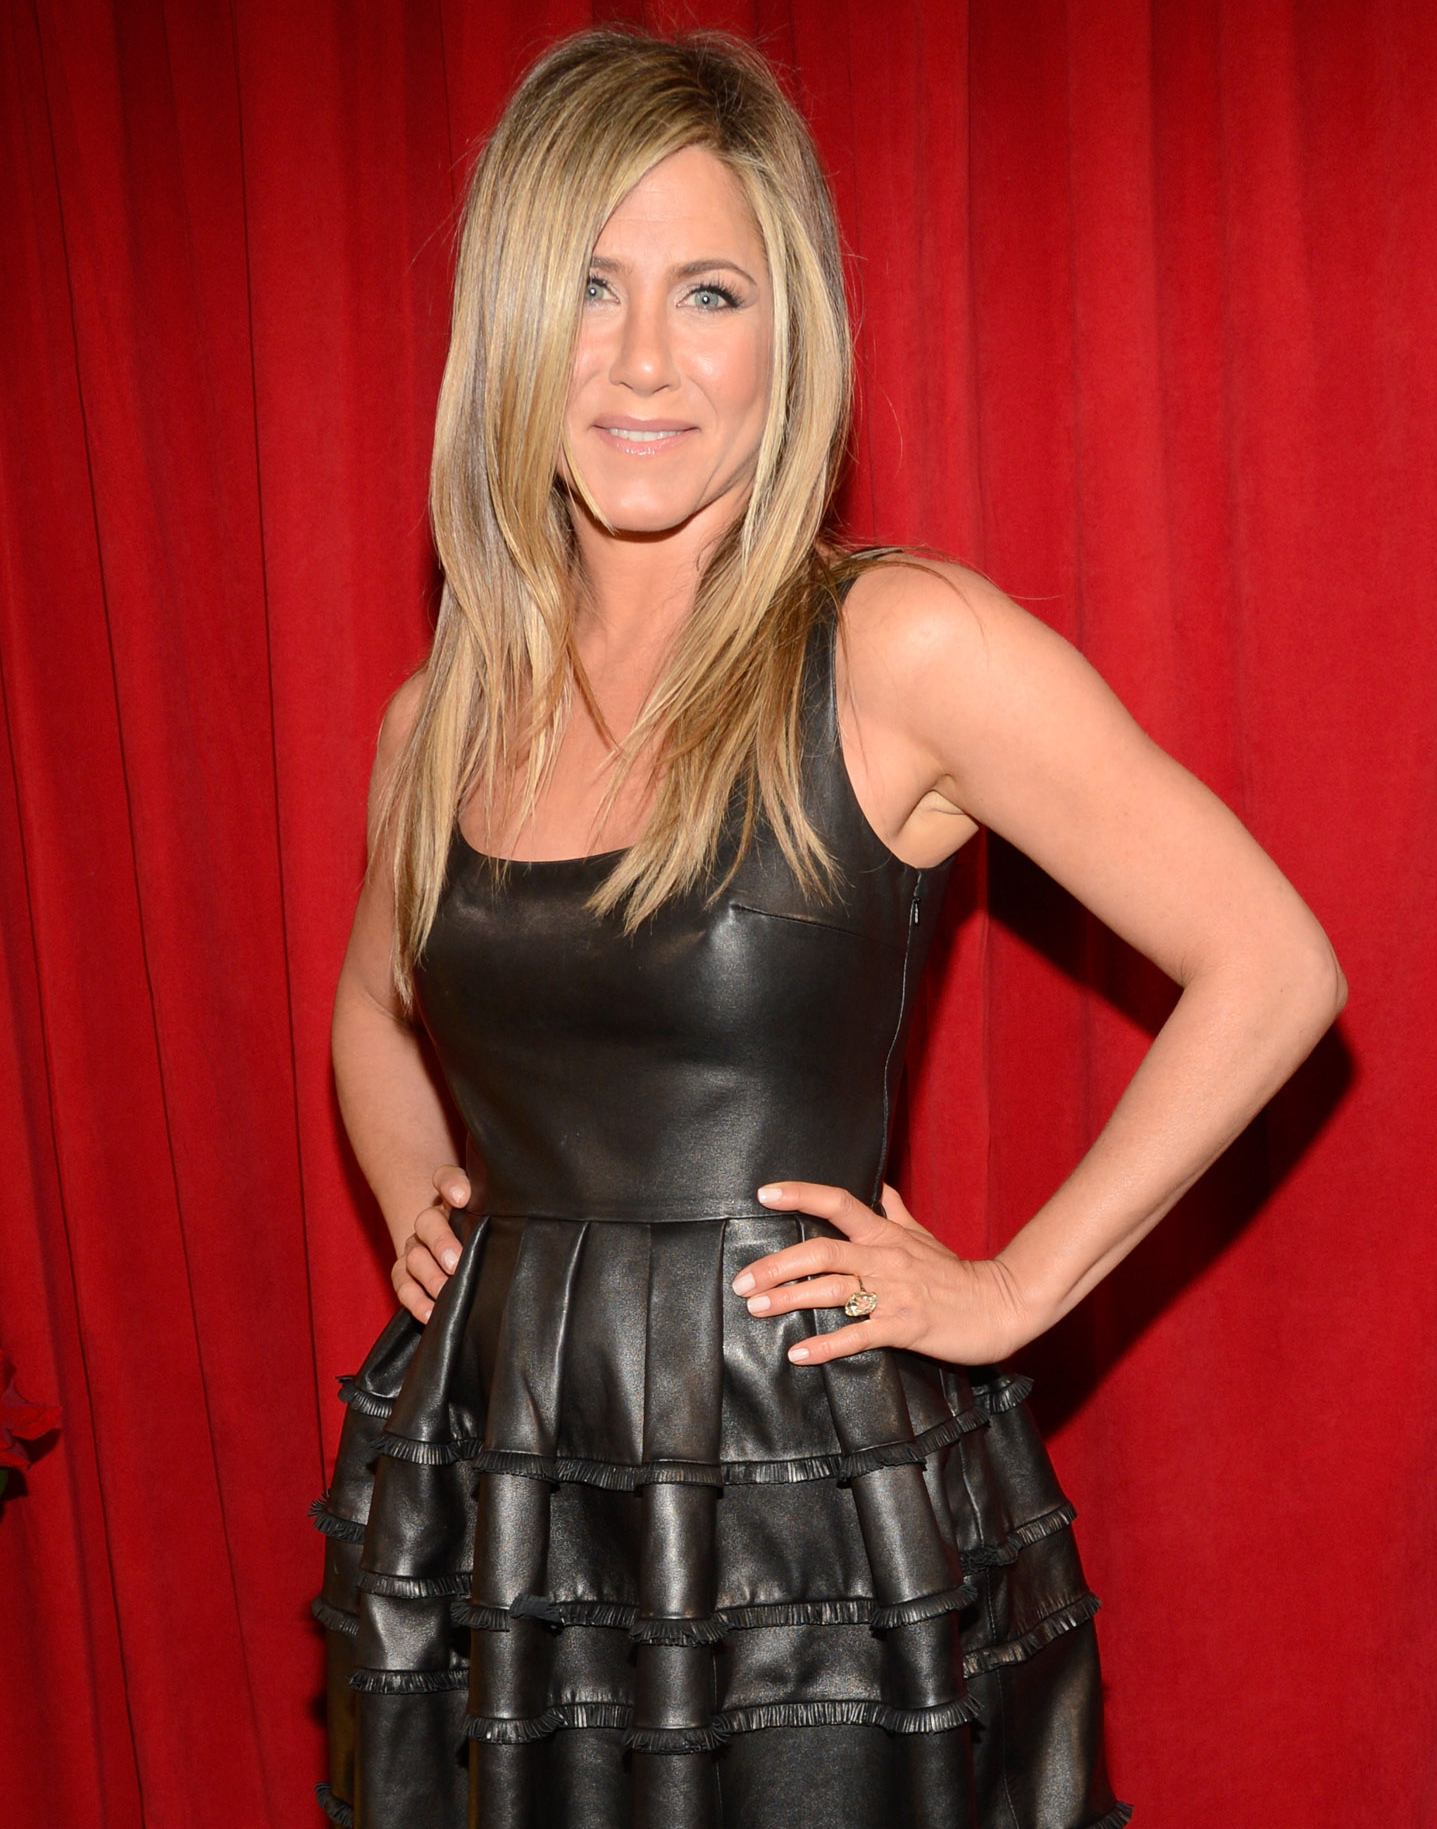 michelle obama jennifer aniston plastic surgery under arm increase